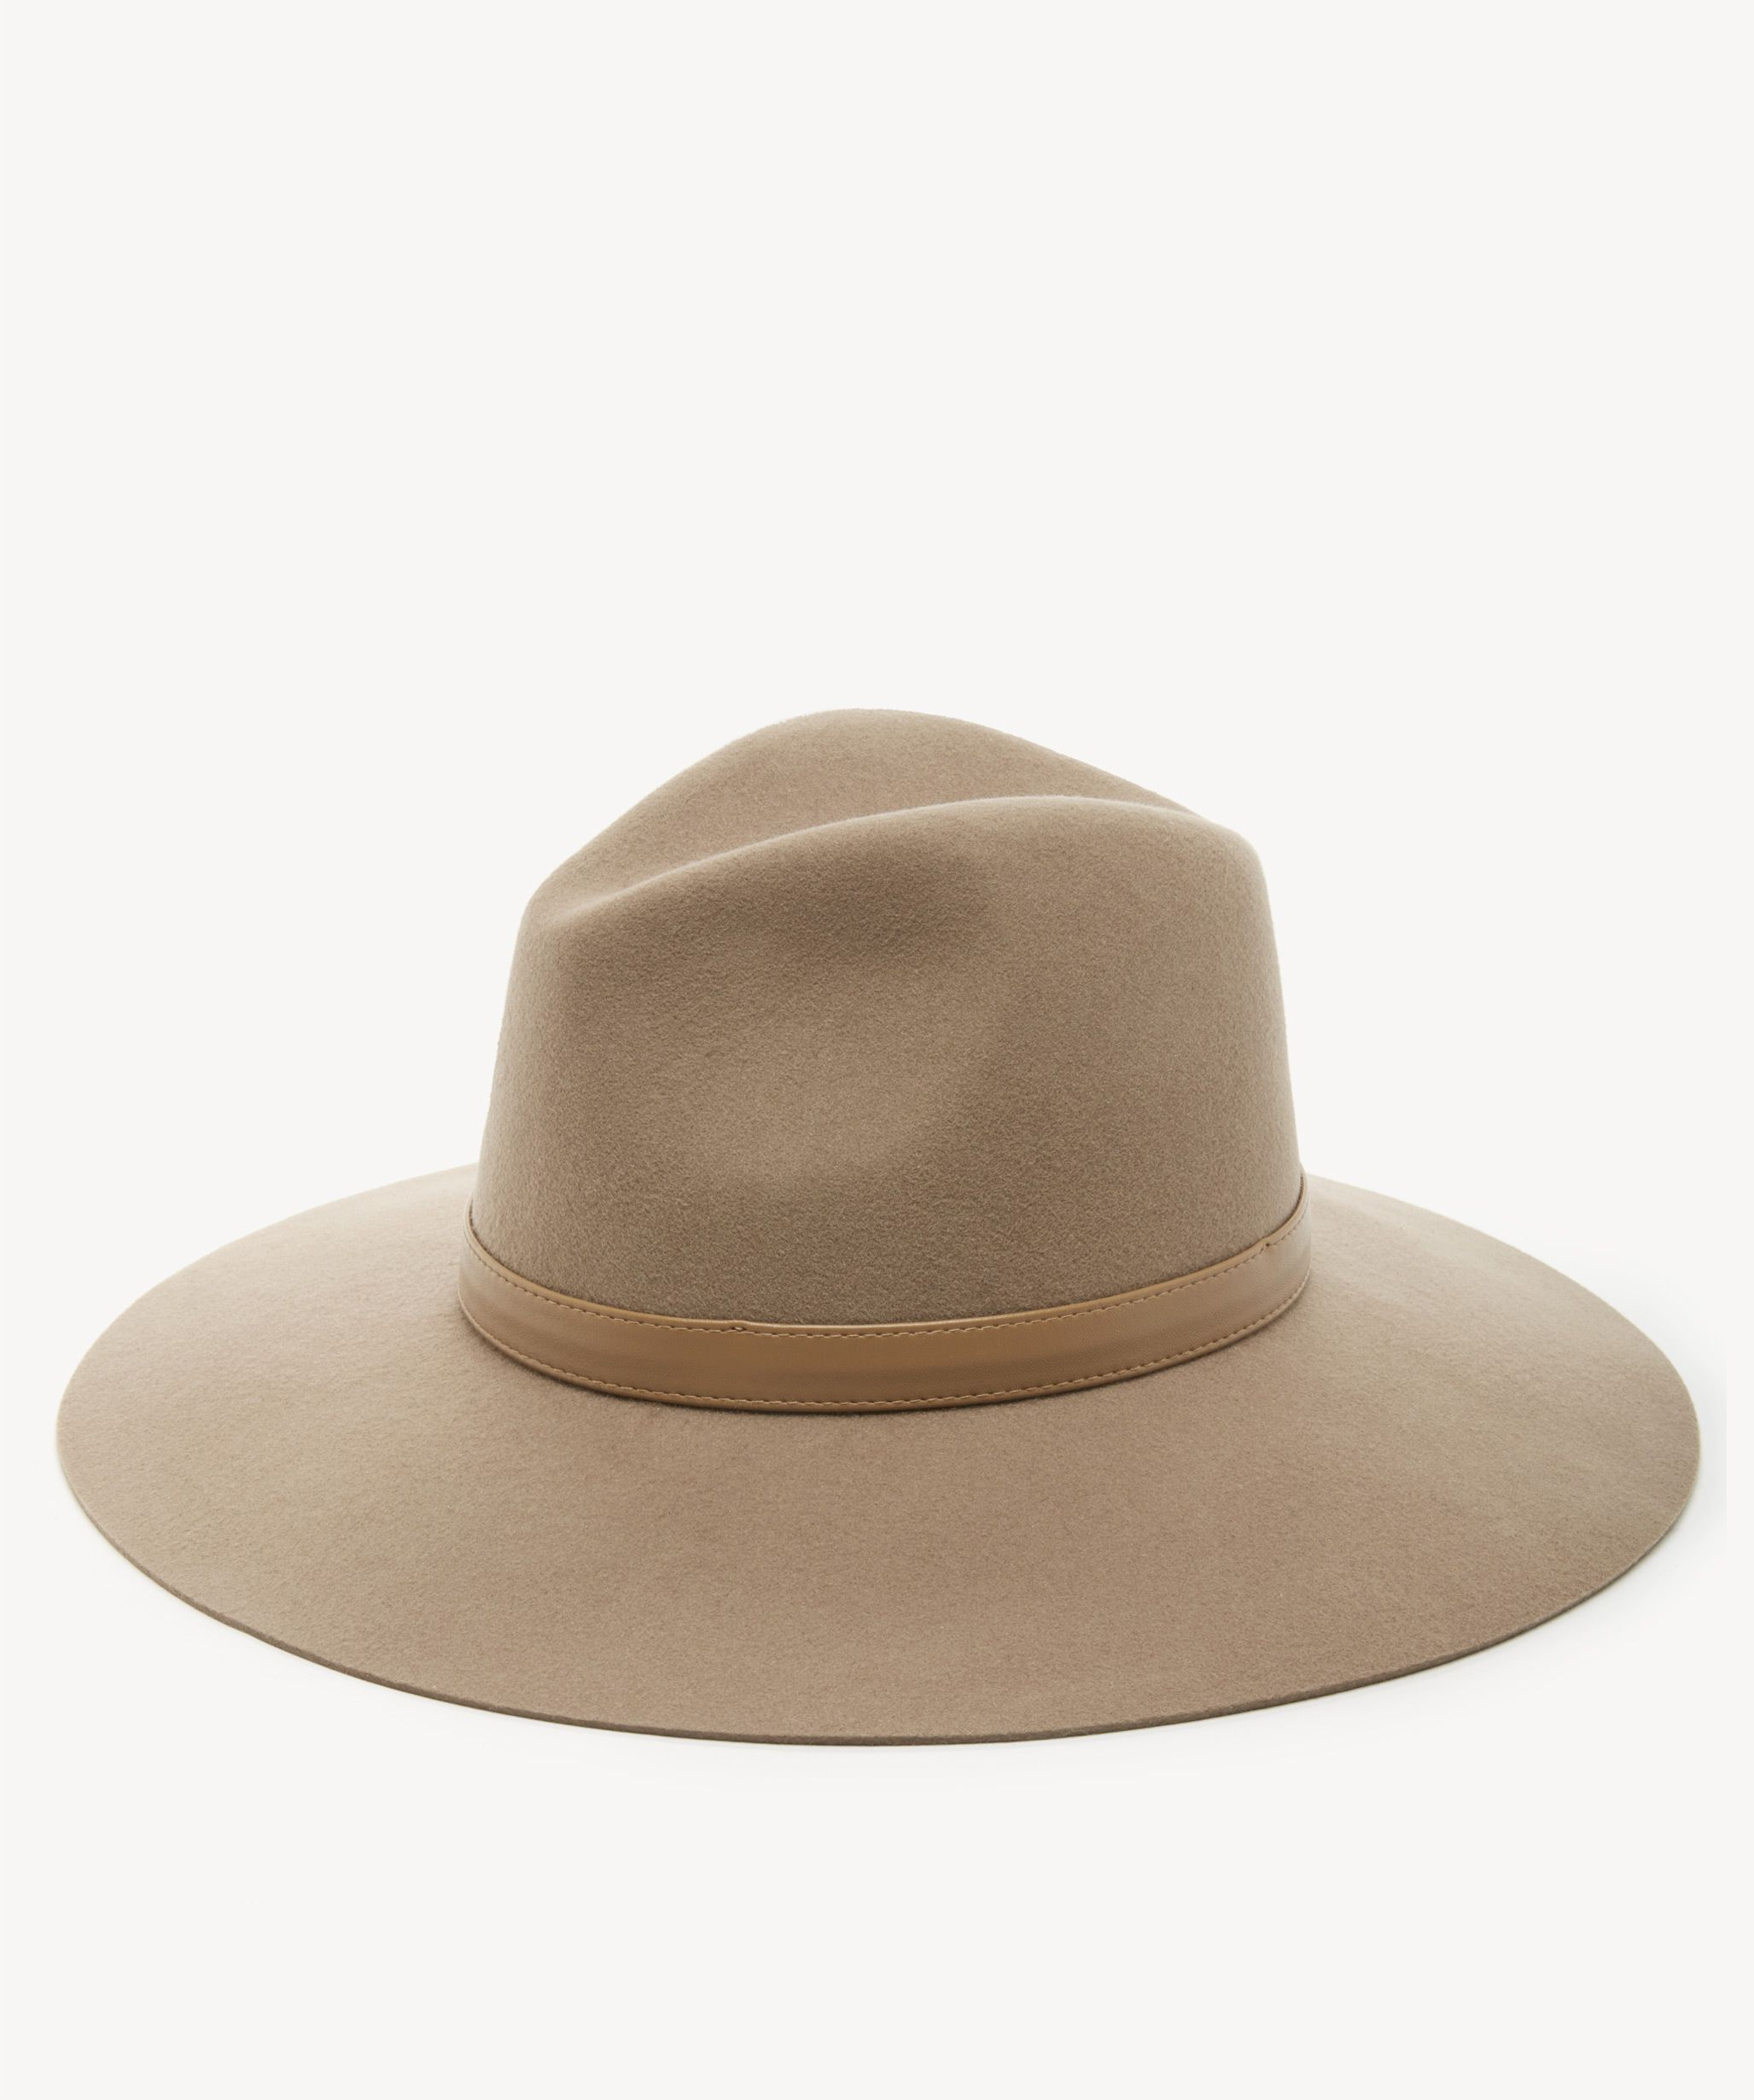 b87ac8c6 Sole Society Wide Brim Wool Hat | Sole Society Shoes, Bags and Accessories